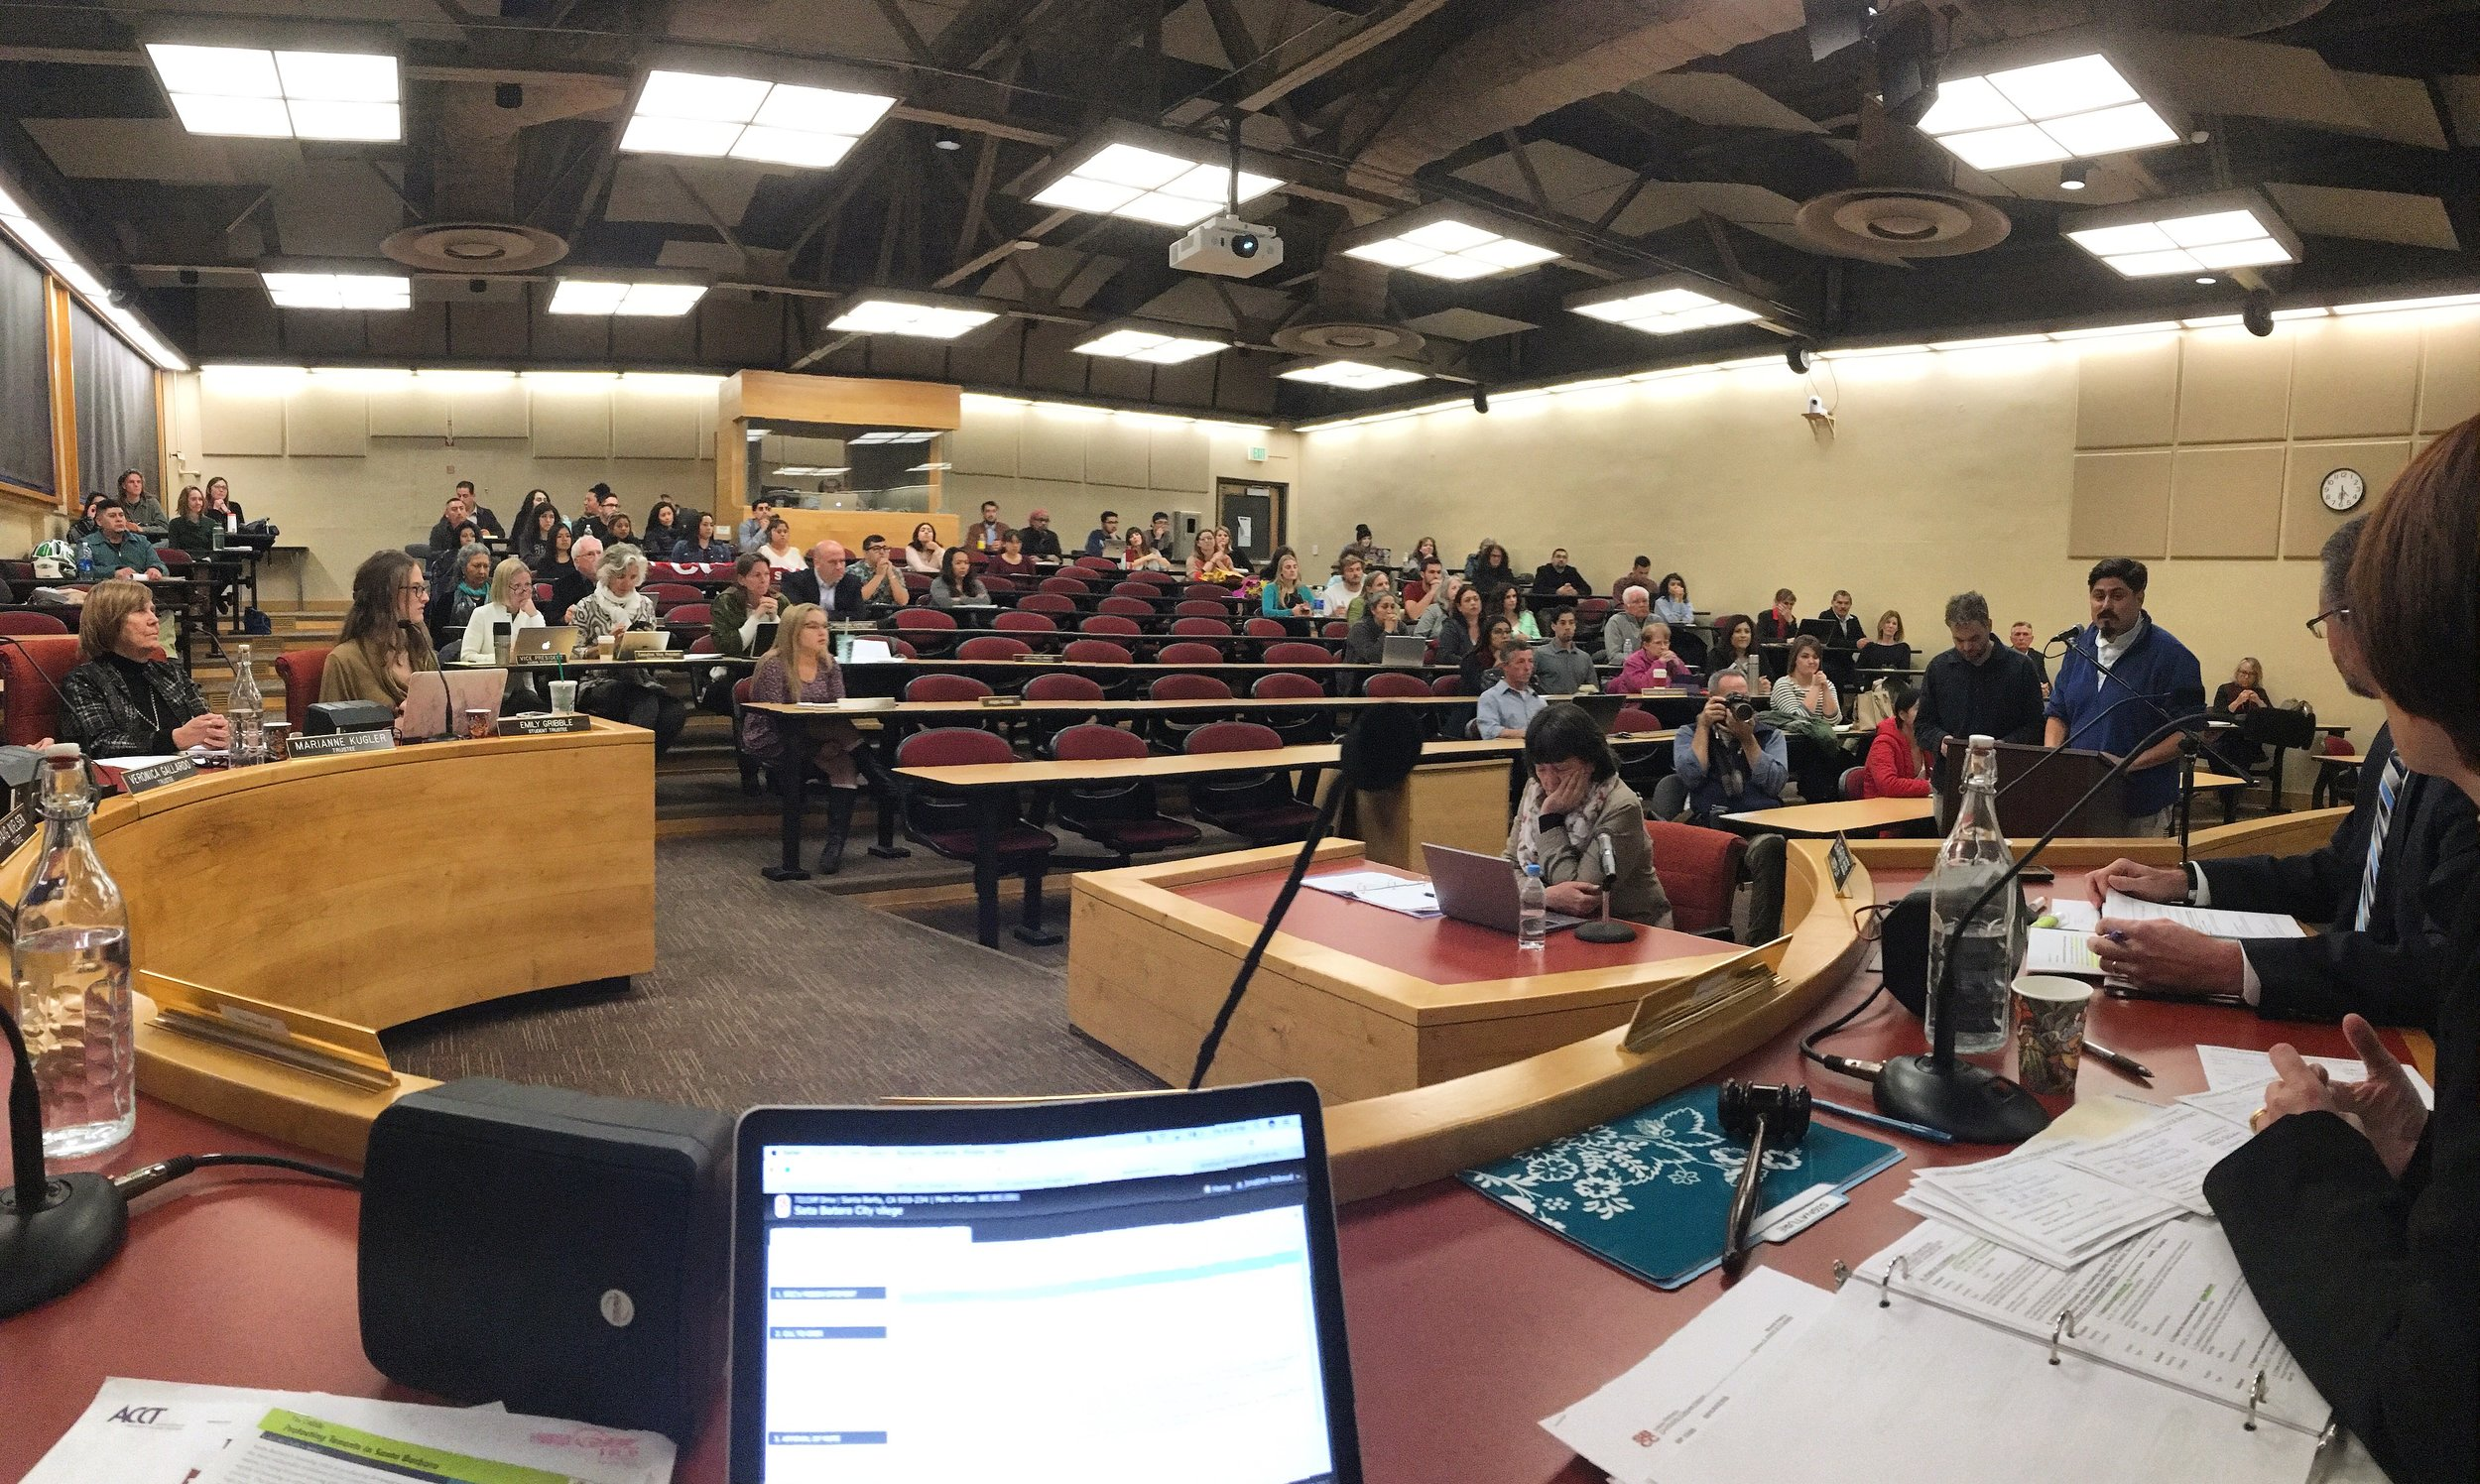 The January 26, 2017 Board meeting - dozens of community members spoke in favor of the resolution to support and protect undocumented students